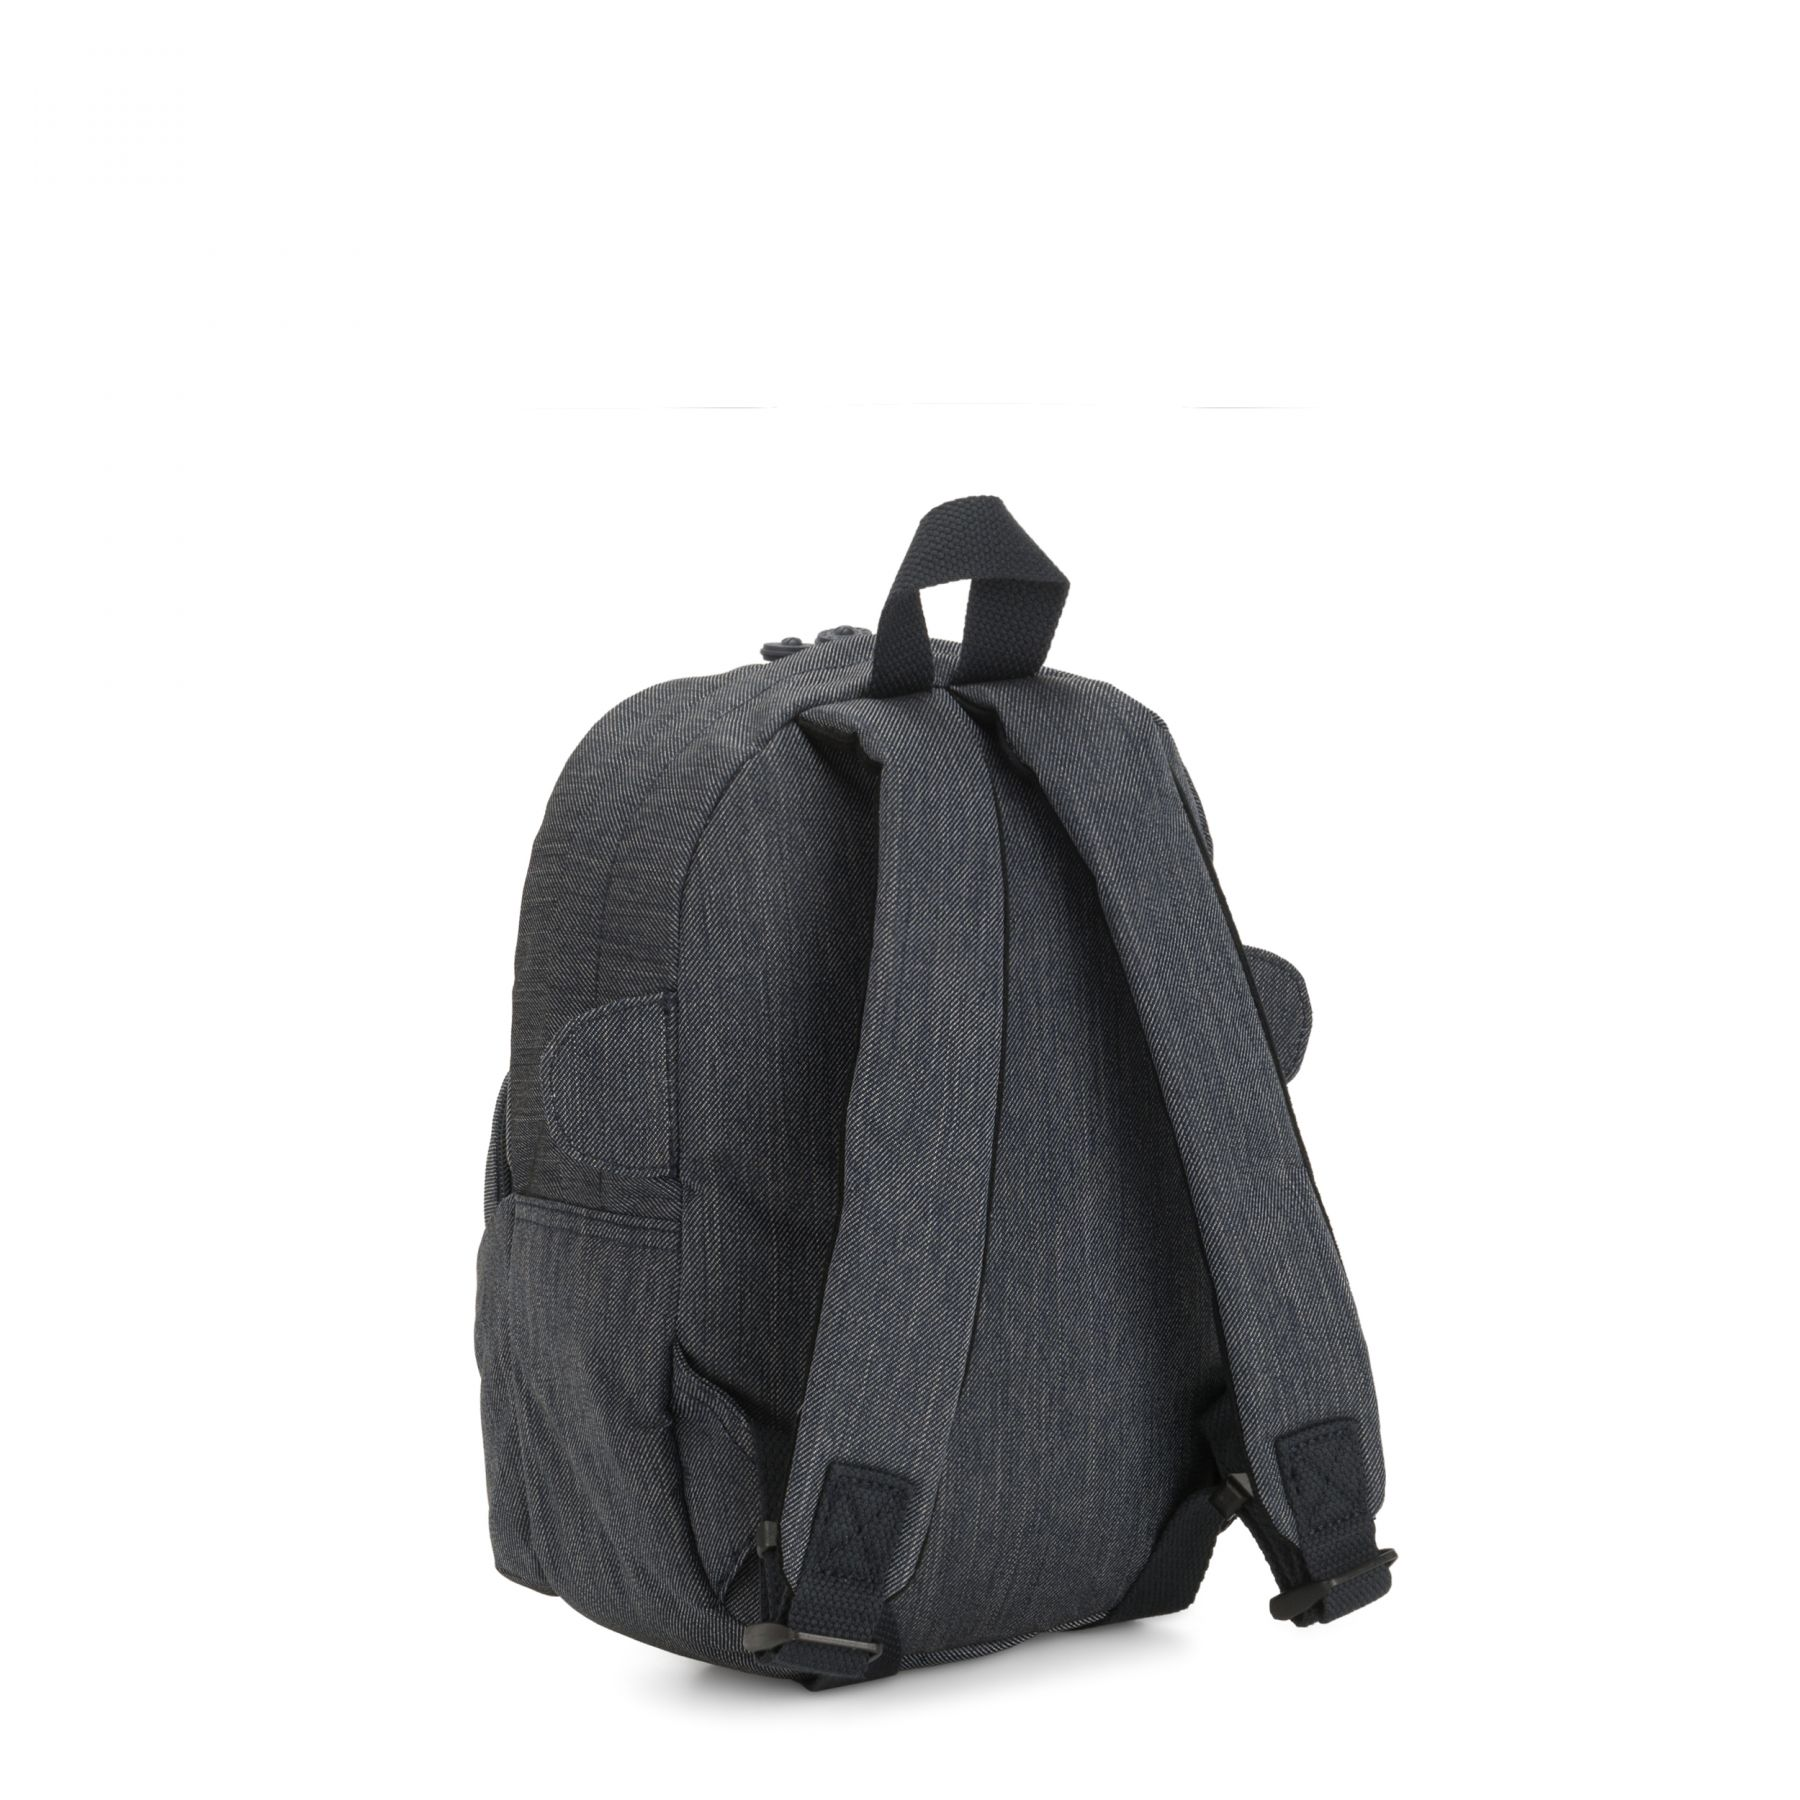 FASTER Latest Backpacks by Kipling - Back view